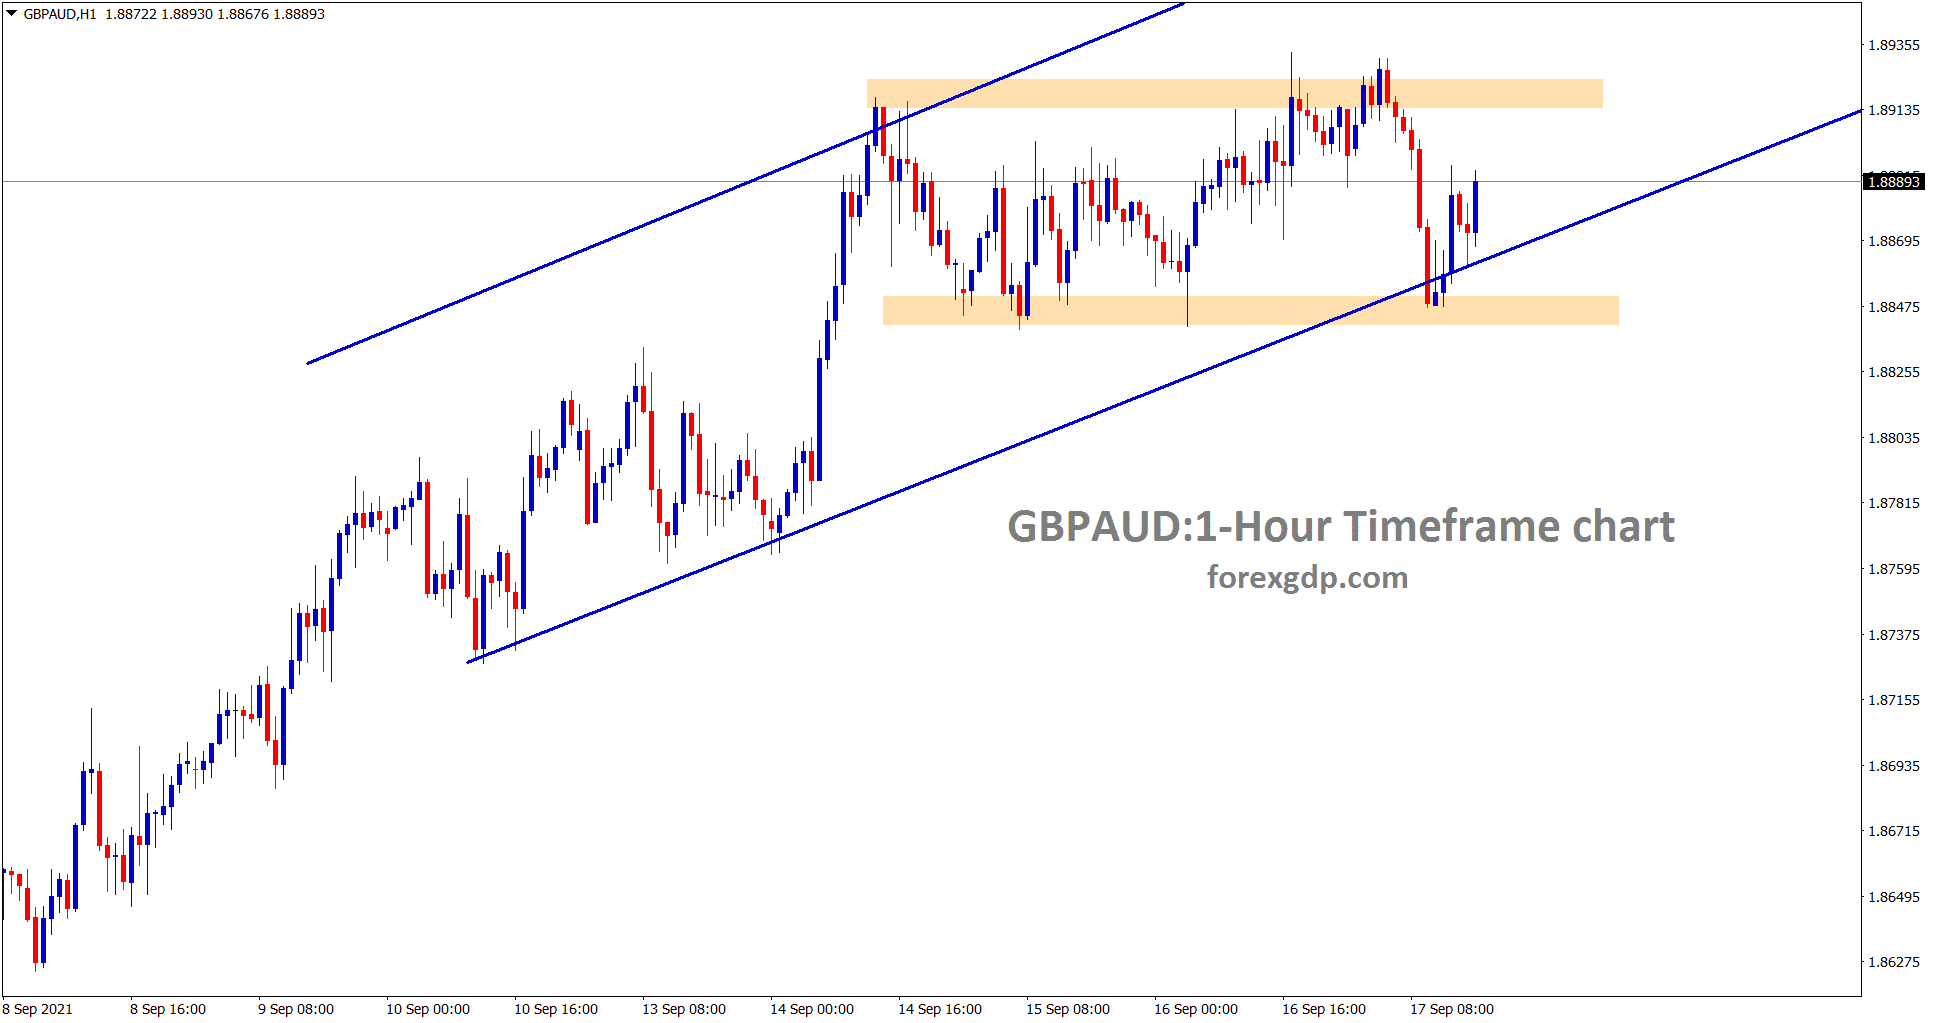 GBPAUD is ranging in an uptrend line